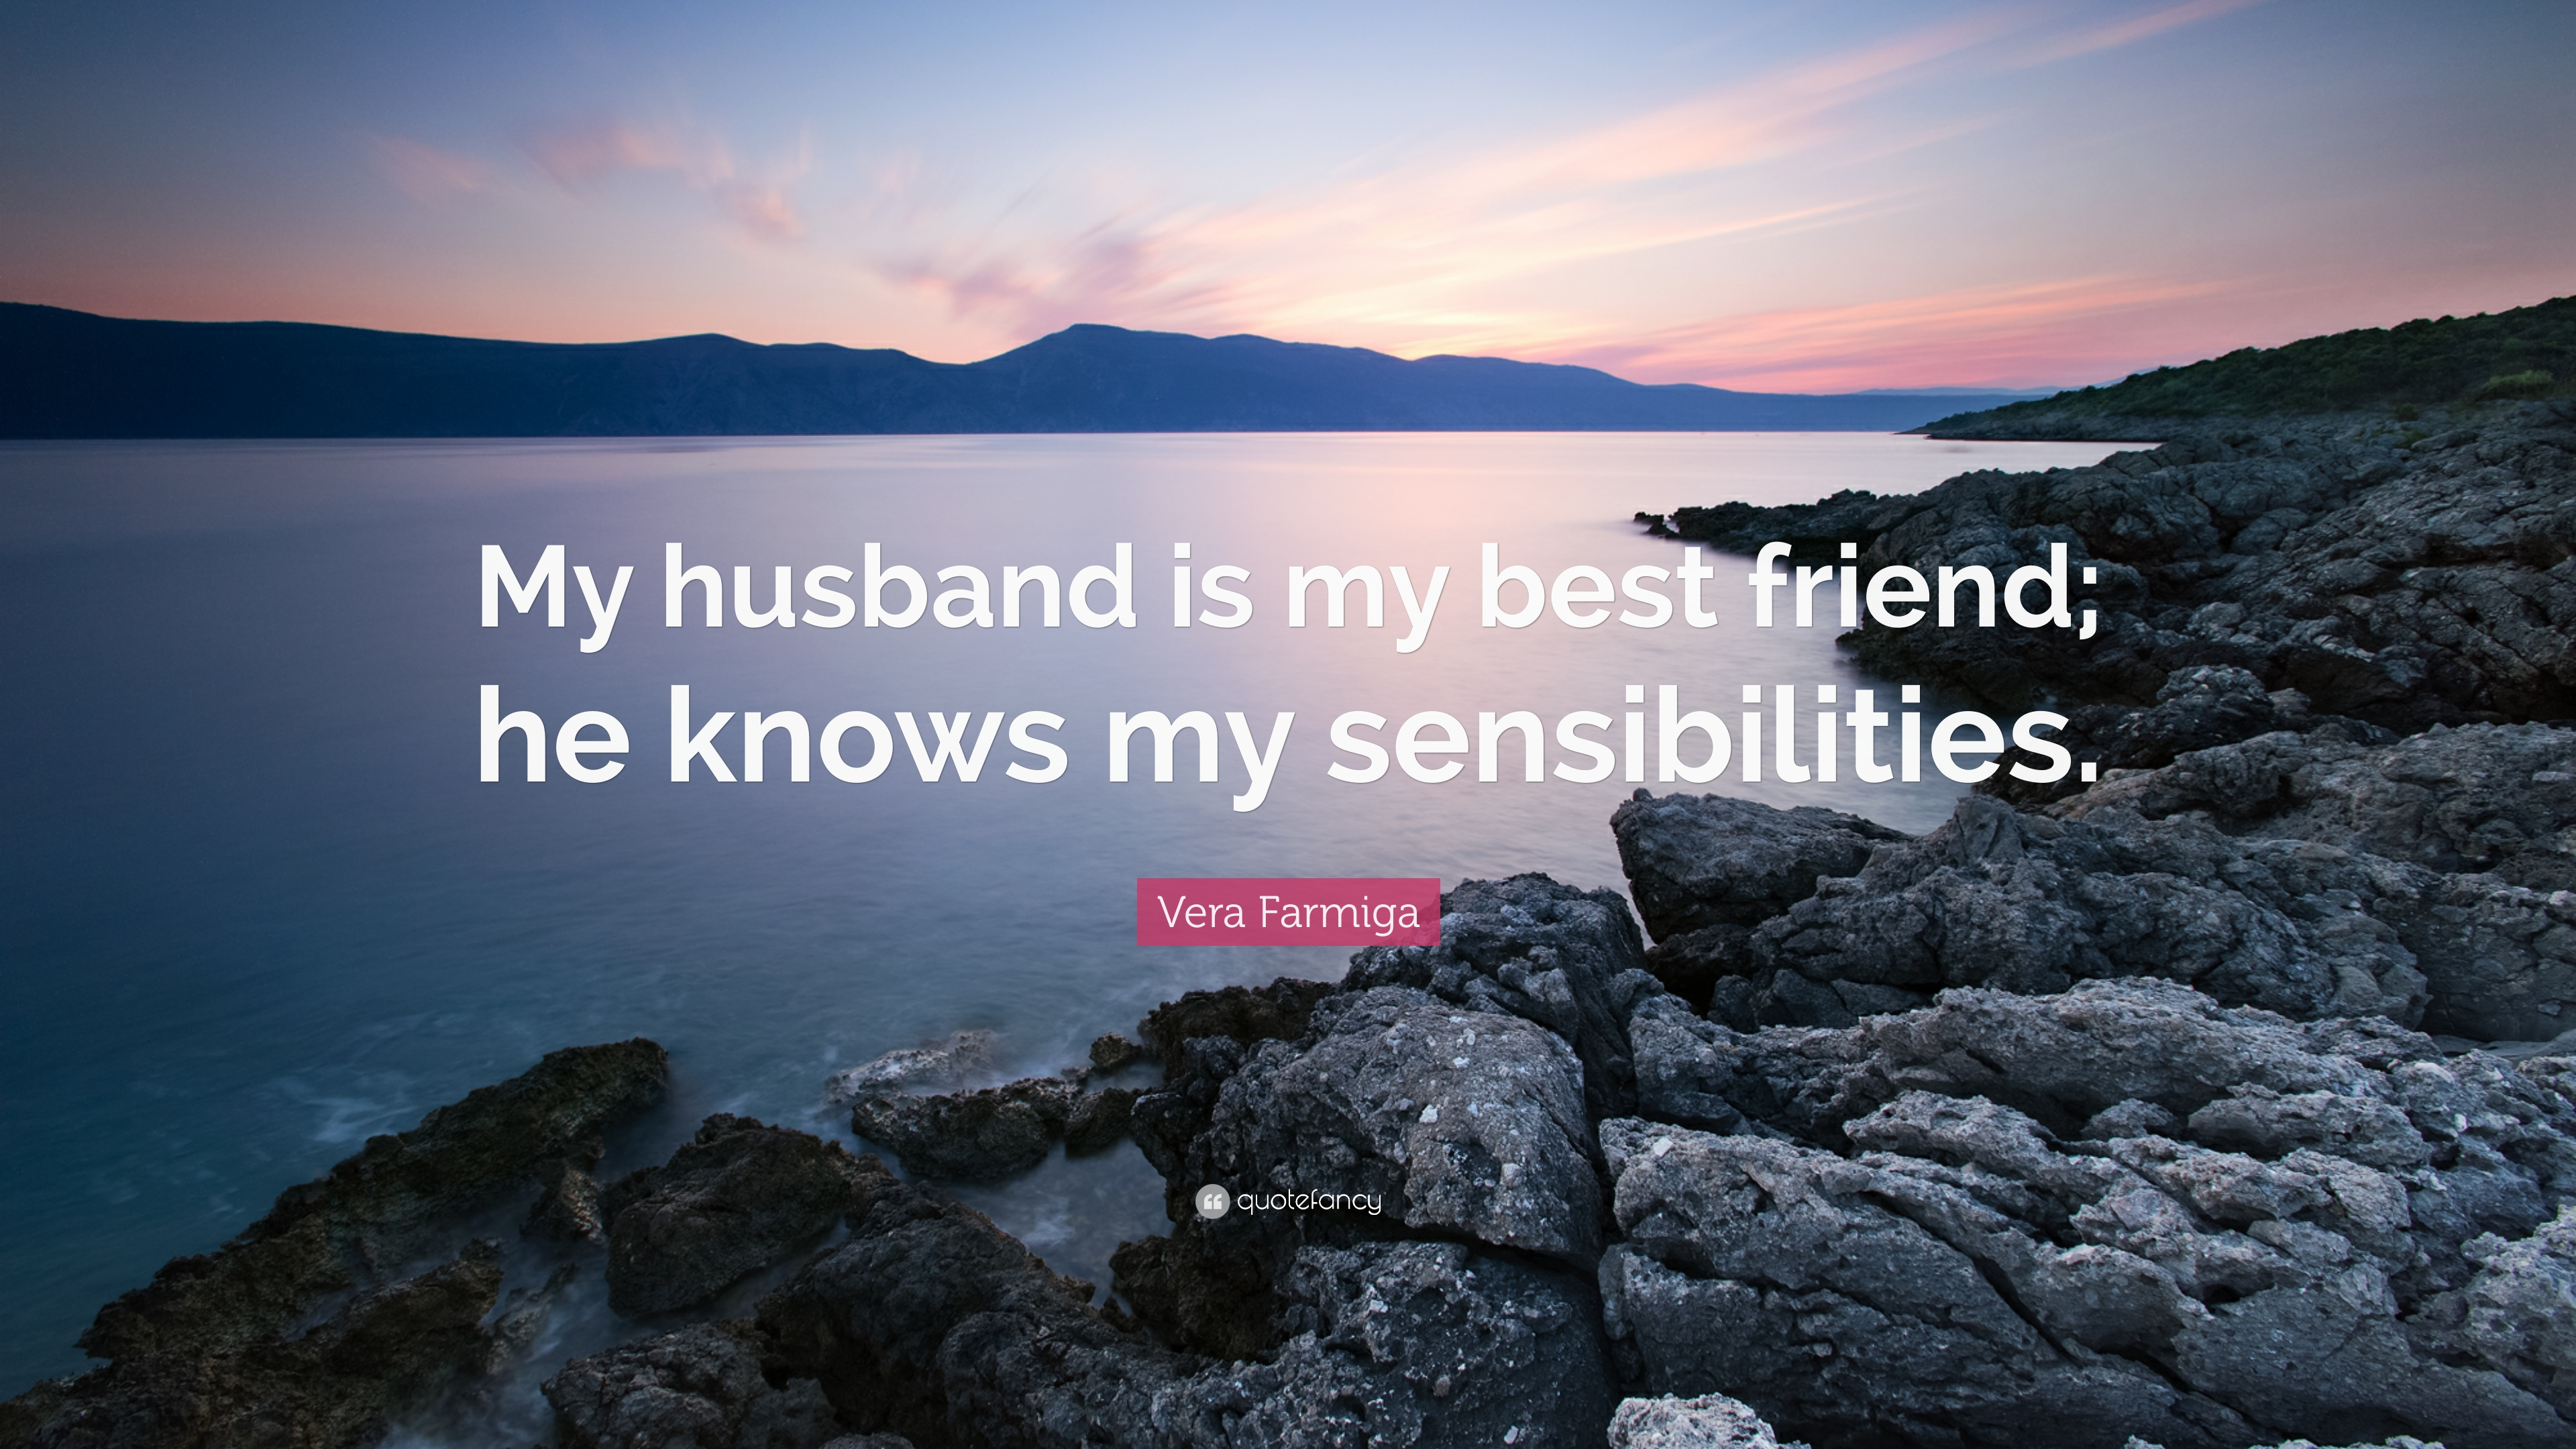 Vera Farmiga Quote My Husband Is My Best Friend He Knows My Sensibilities 7 Wallpapers Quotefancy